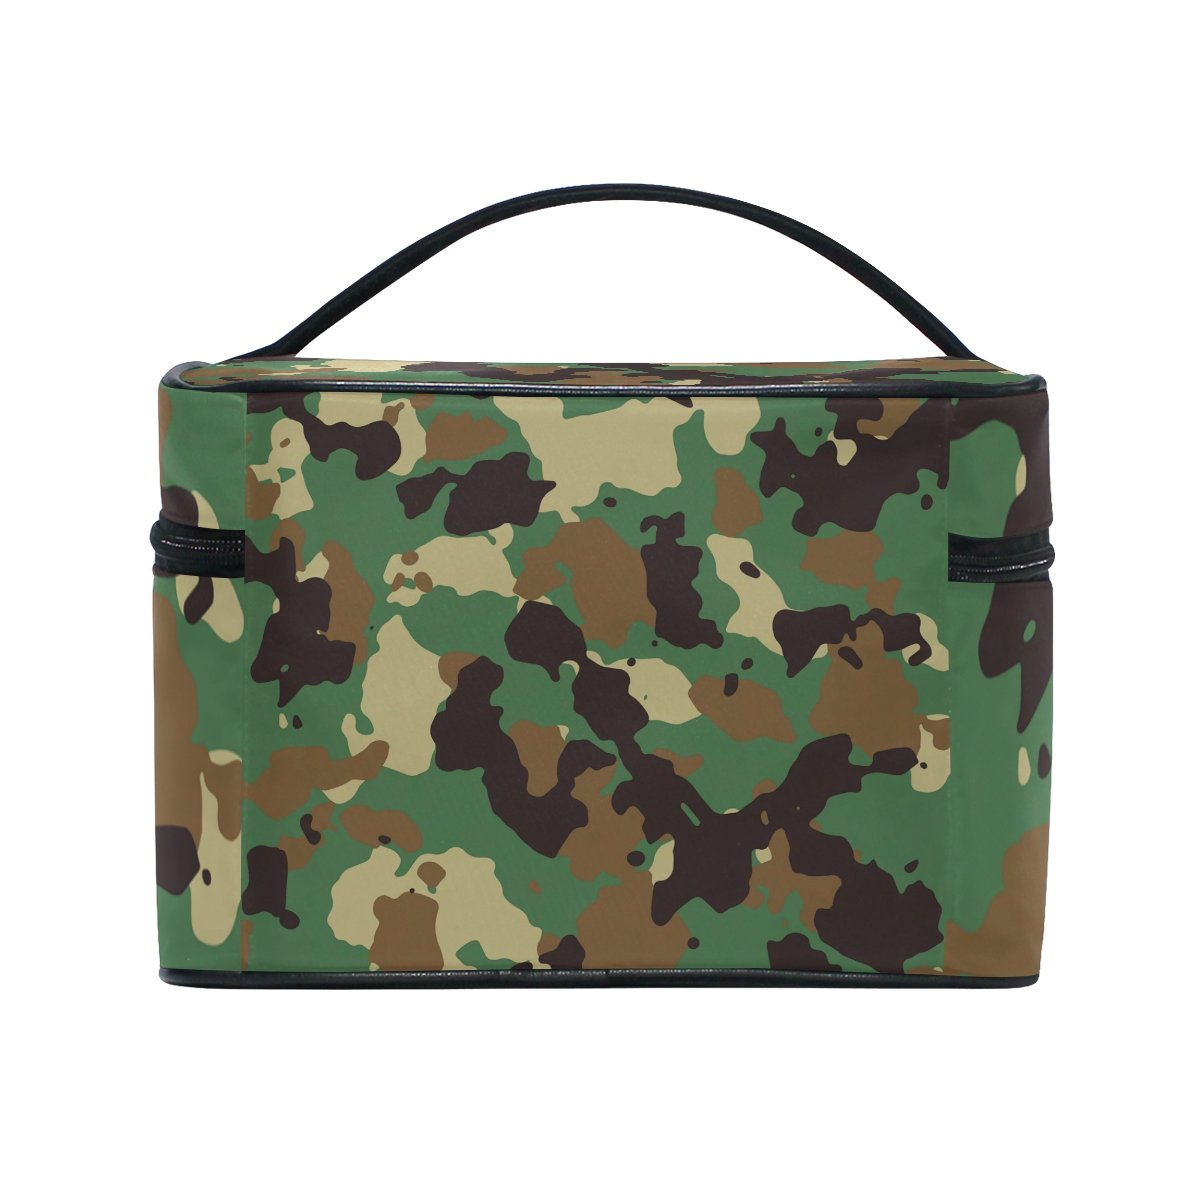 Military Camo Camouflage Pattern Print Travel Makeup Toiletry Organizer Case Cosmetic Bag